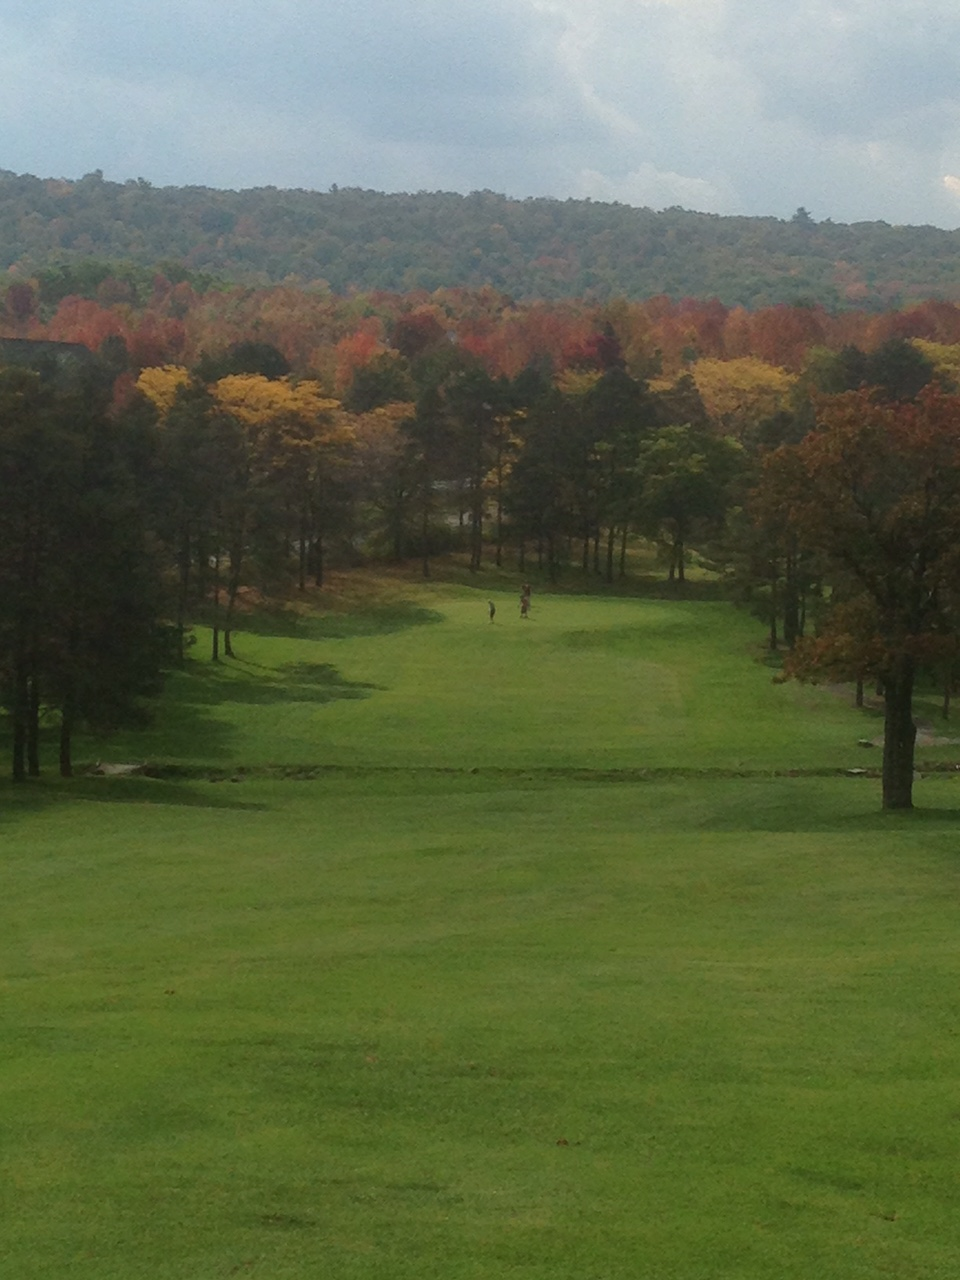 looking down the 1st fairway in the fall.  photo credit: Ryan Molter